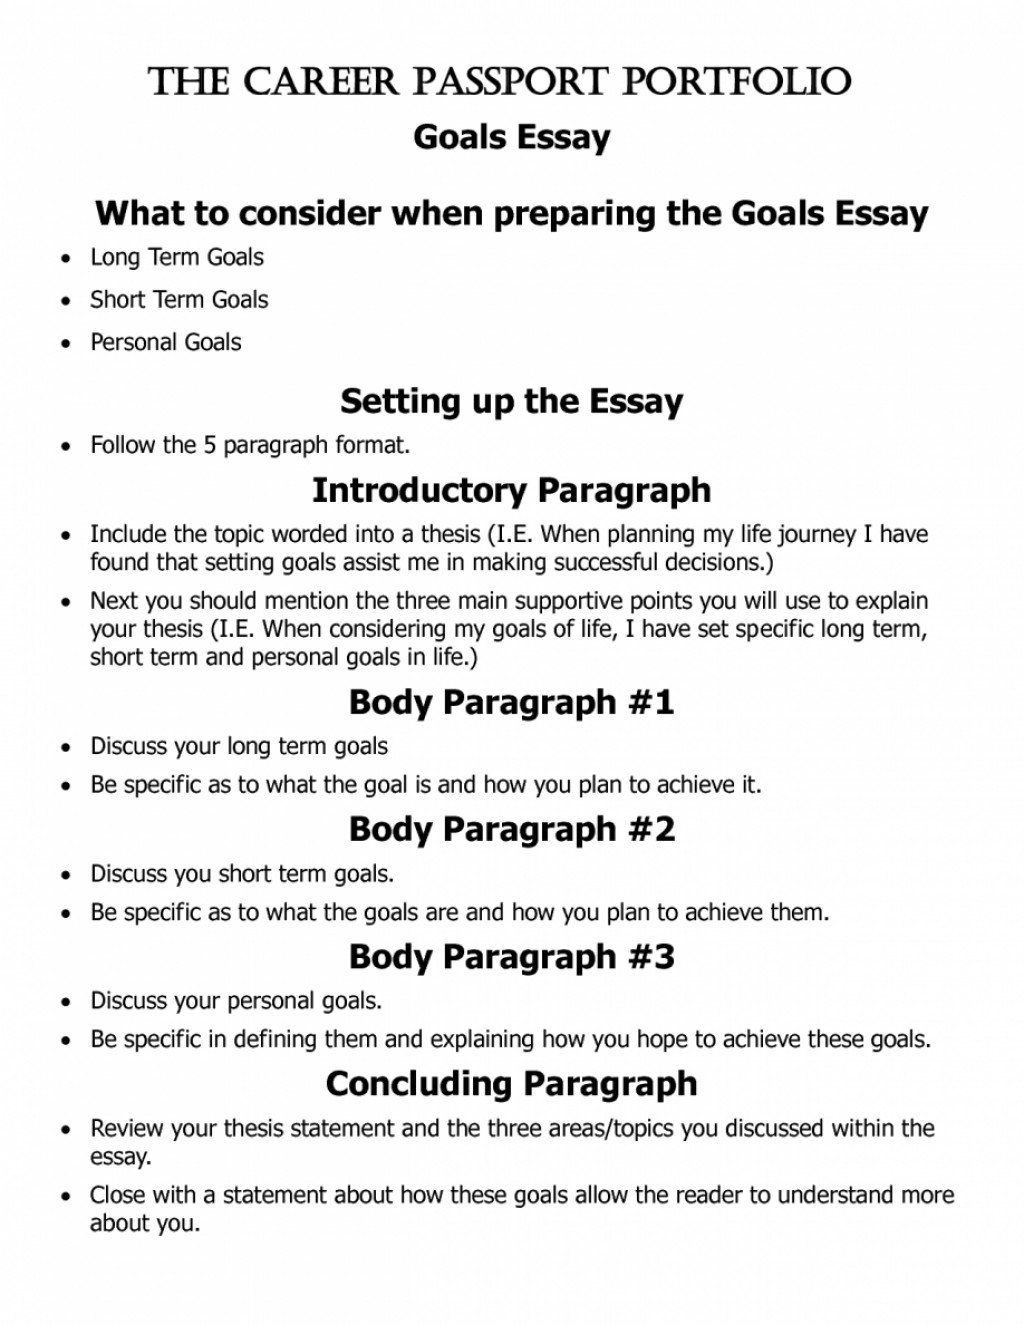 004 How Long Is Short Essay And Term Goals Pevita L Incredible A What Story In High School Answer Large